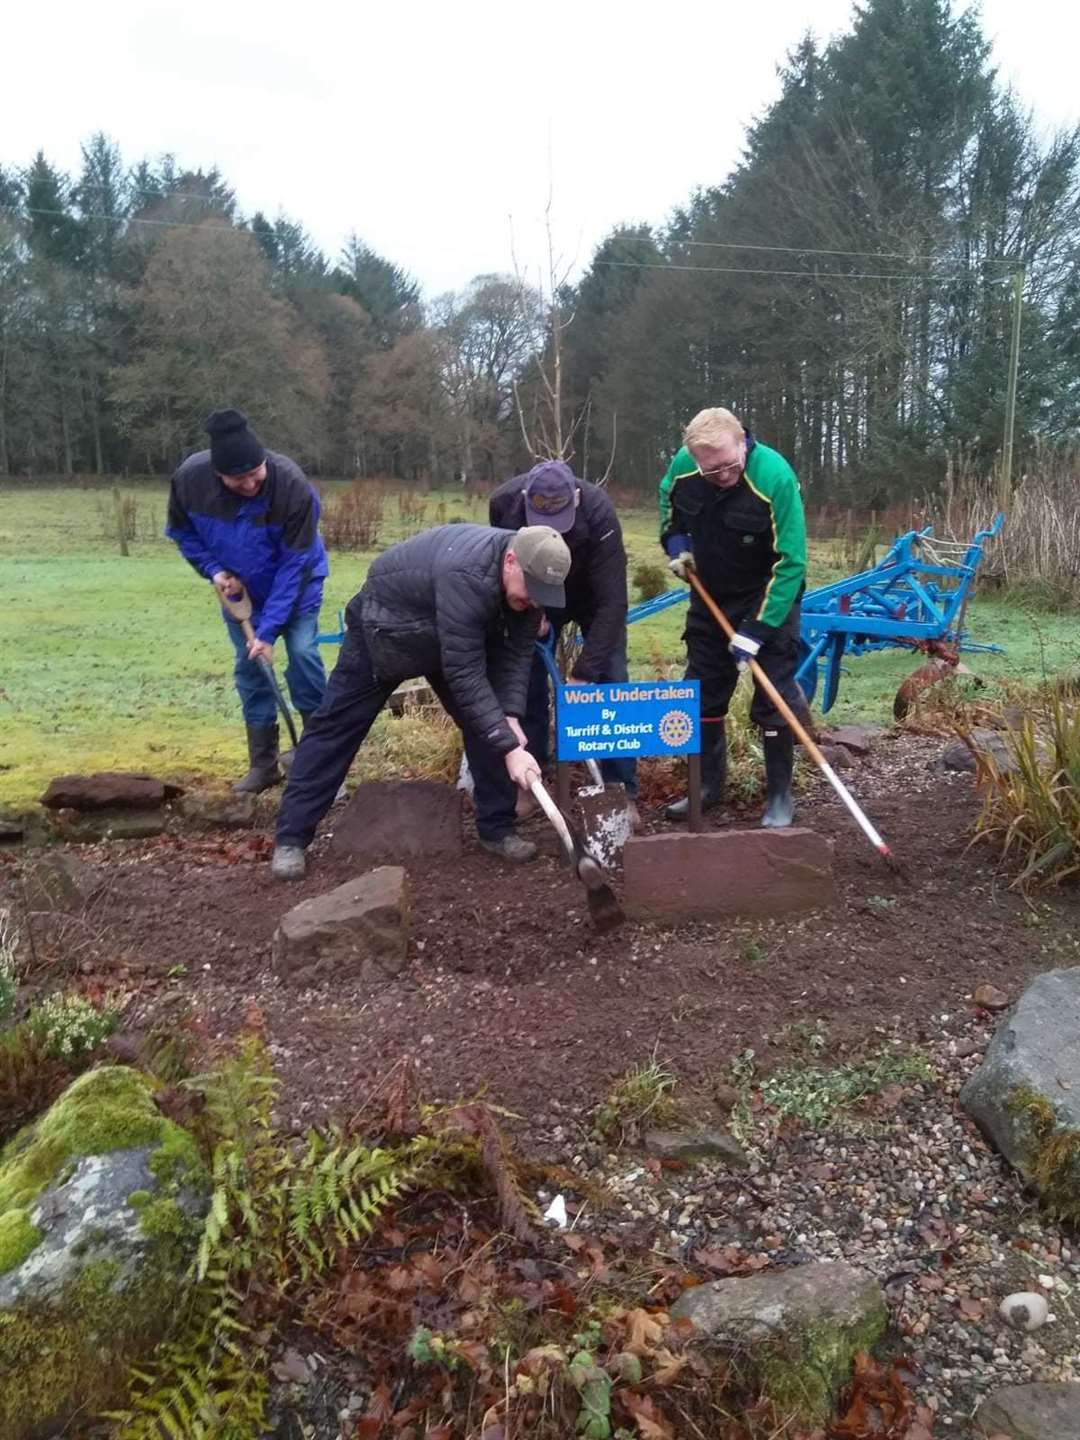 Members planted around 4000 bulbs at Delgatie.